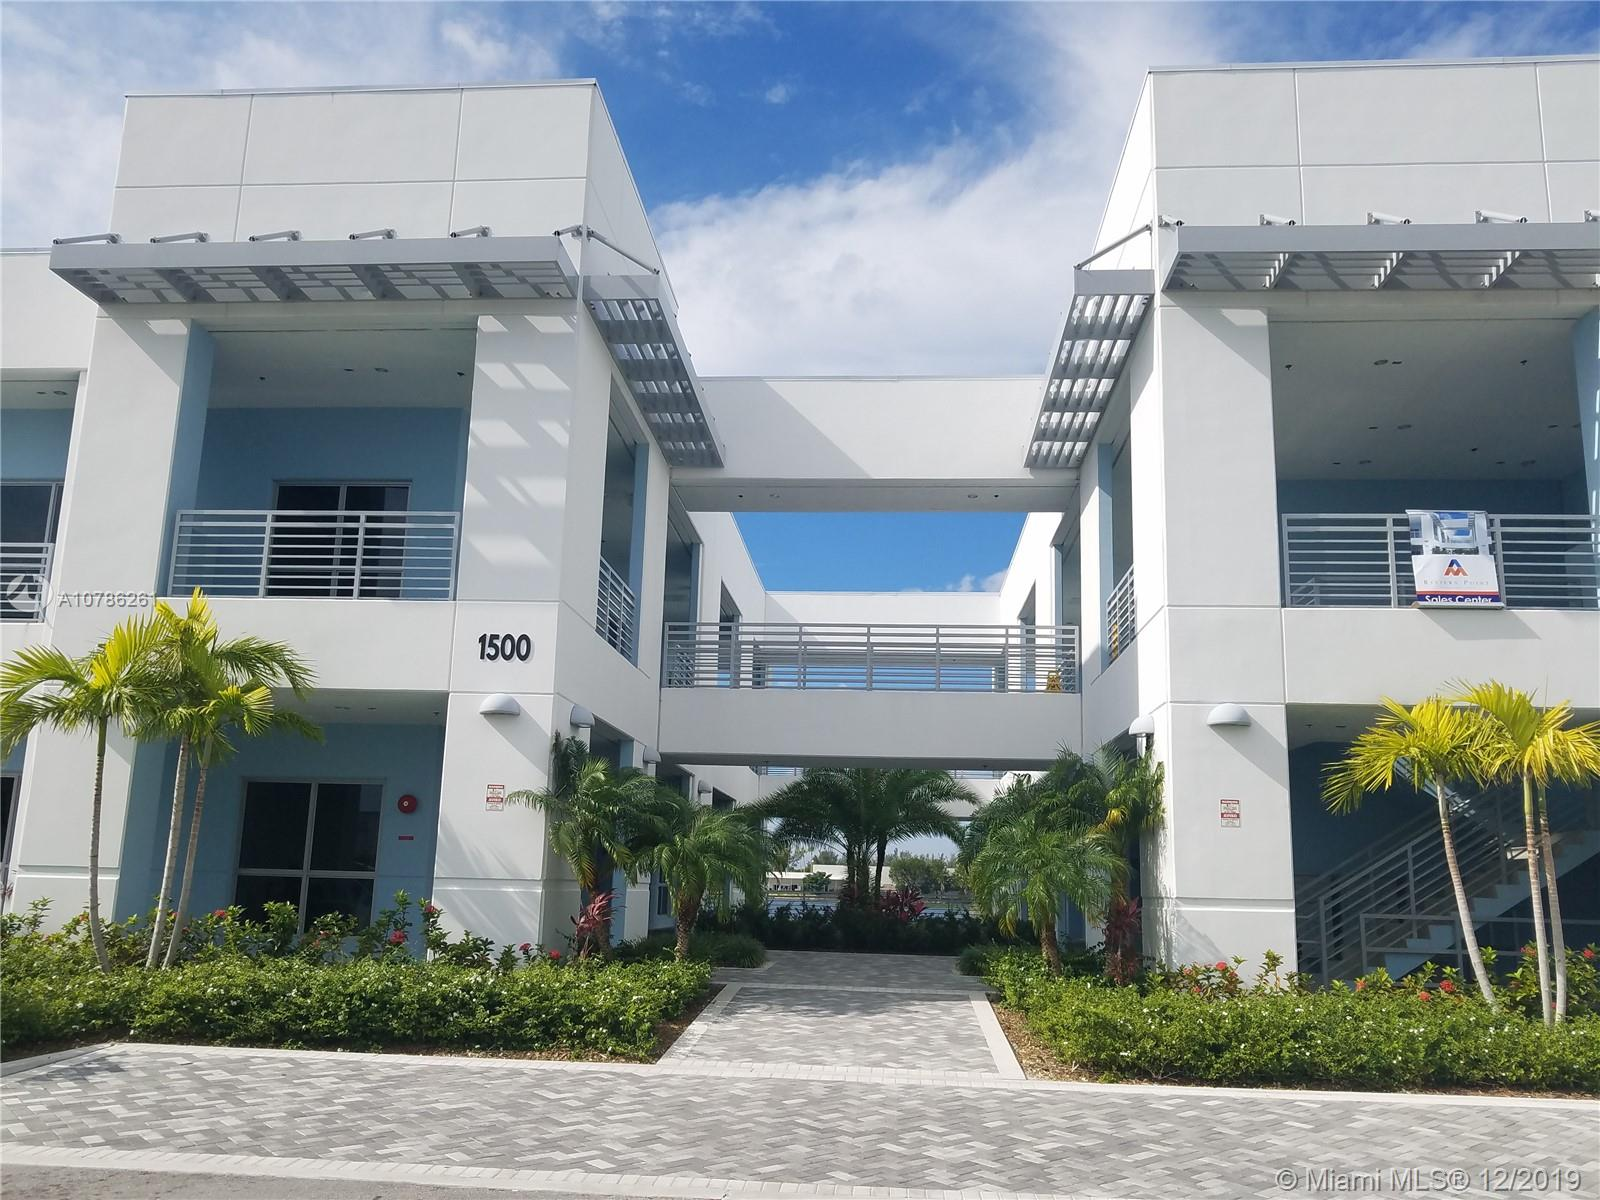 1500 NW 89 Ct # 207, Doral, Florida 33172, ,Commercial Sale,For Sale,1500 NW 89 Ct # 207,A10786261